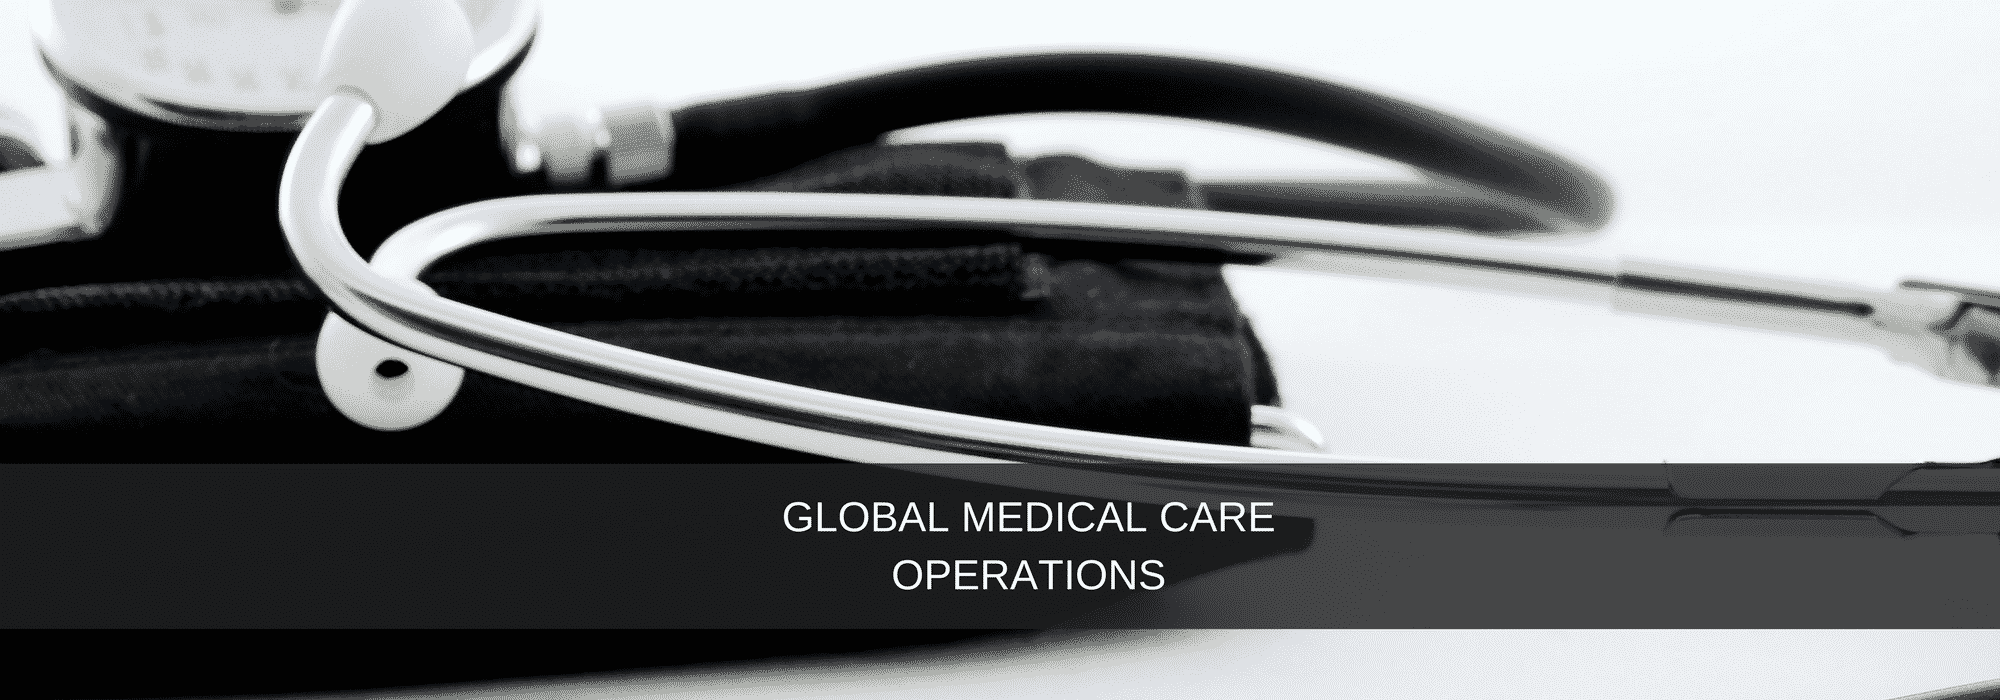 Global Medical Care Operations FAQ - Global Medical Care